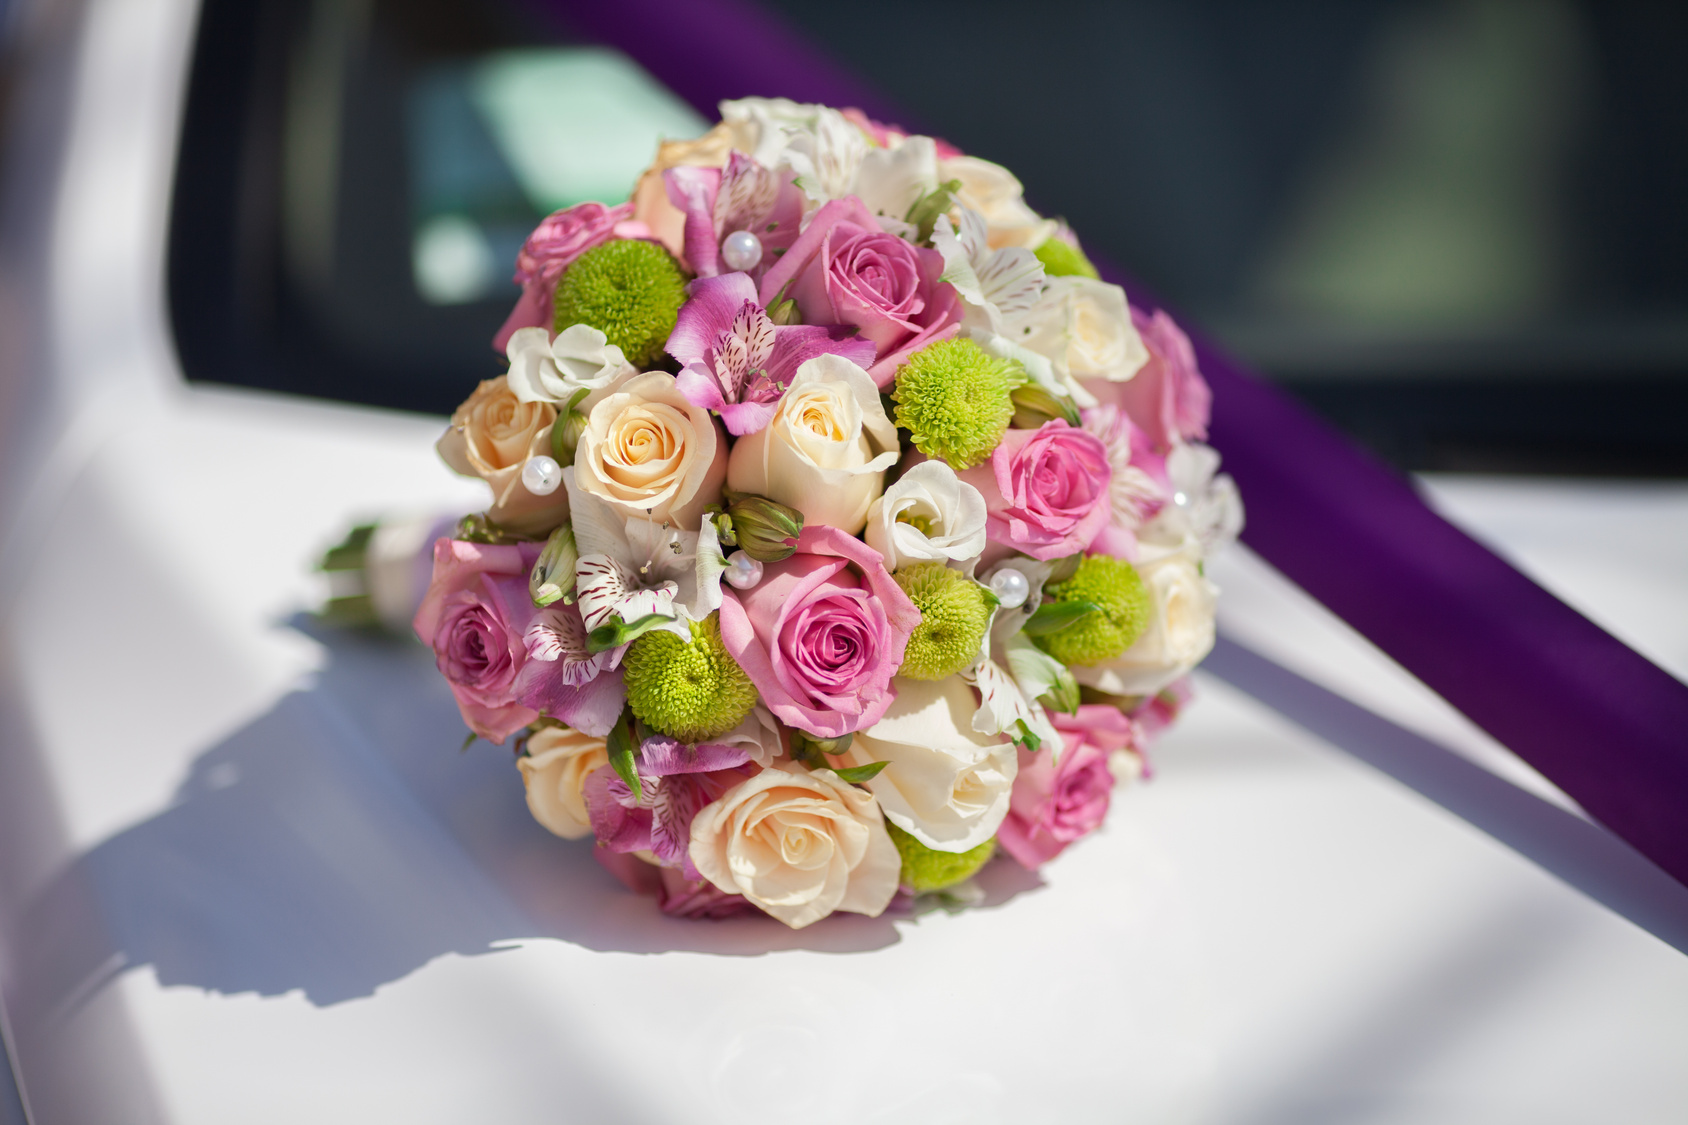 5 Steps to make a hand tied posies bouquet